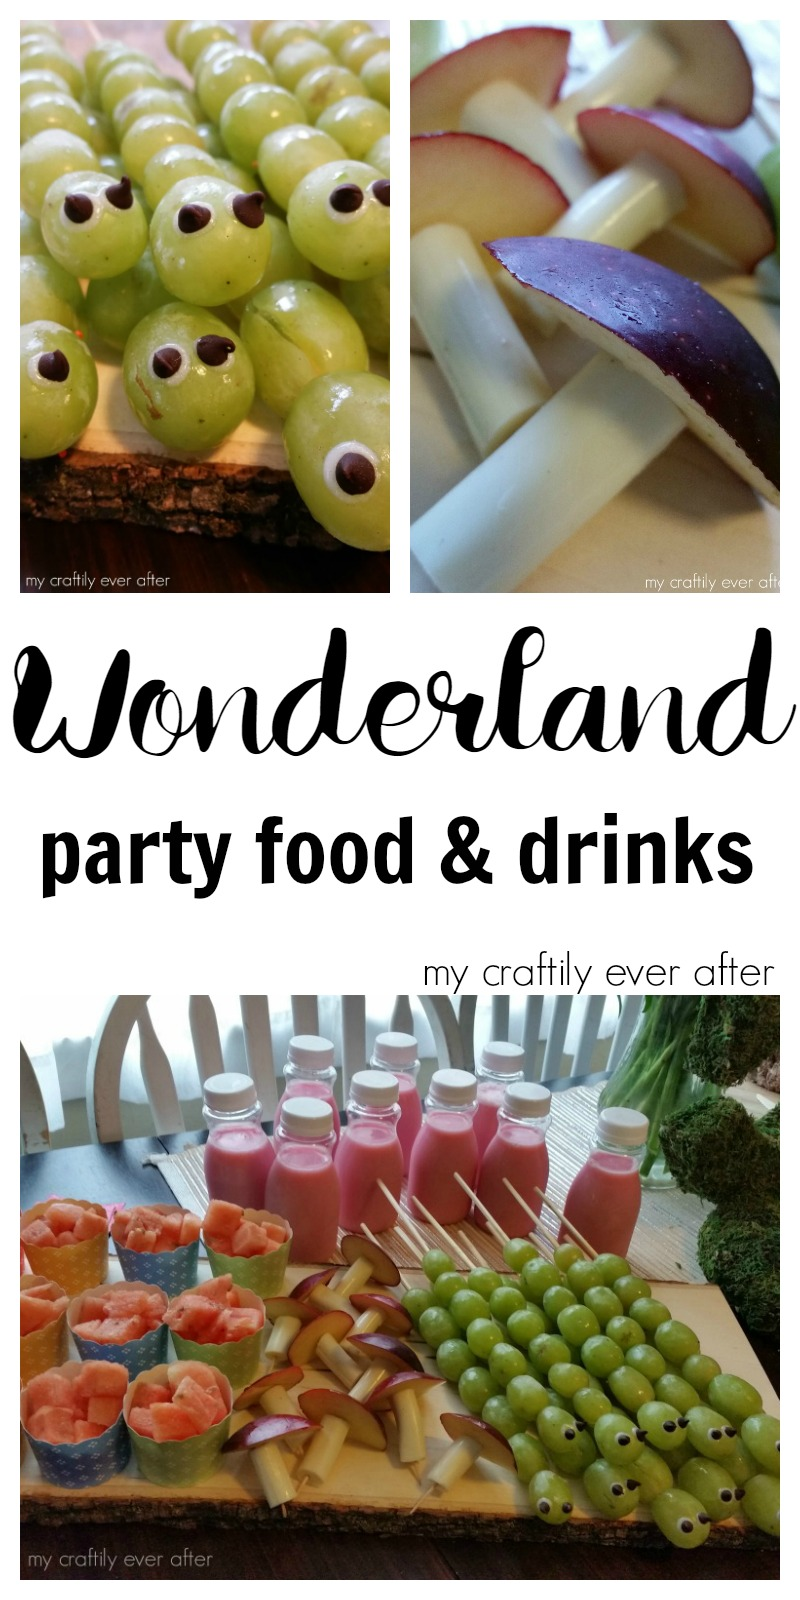 wonderland-party-food-drinks-from-my-craftily-ever-after